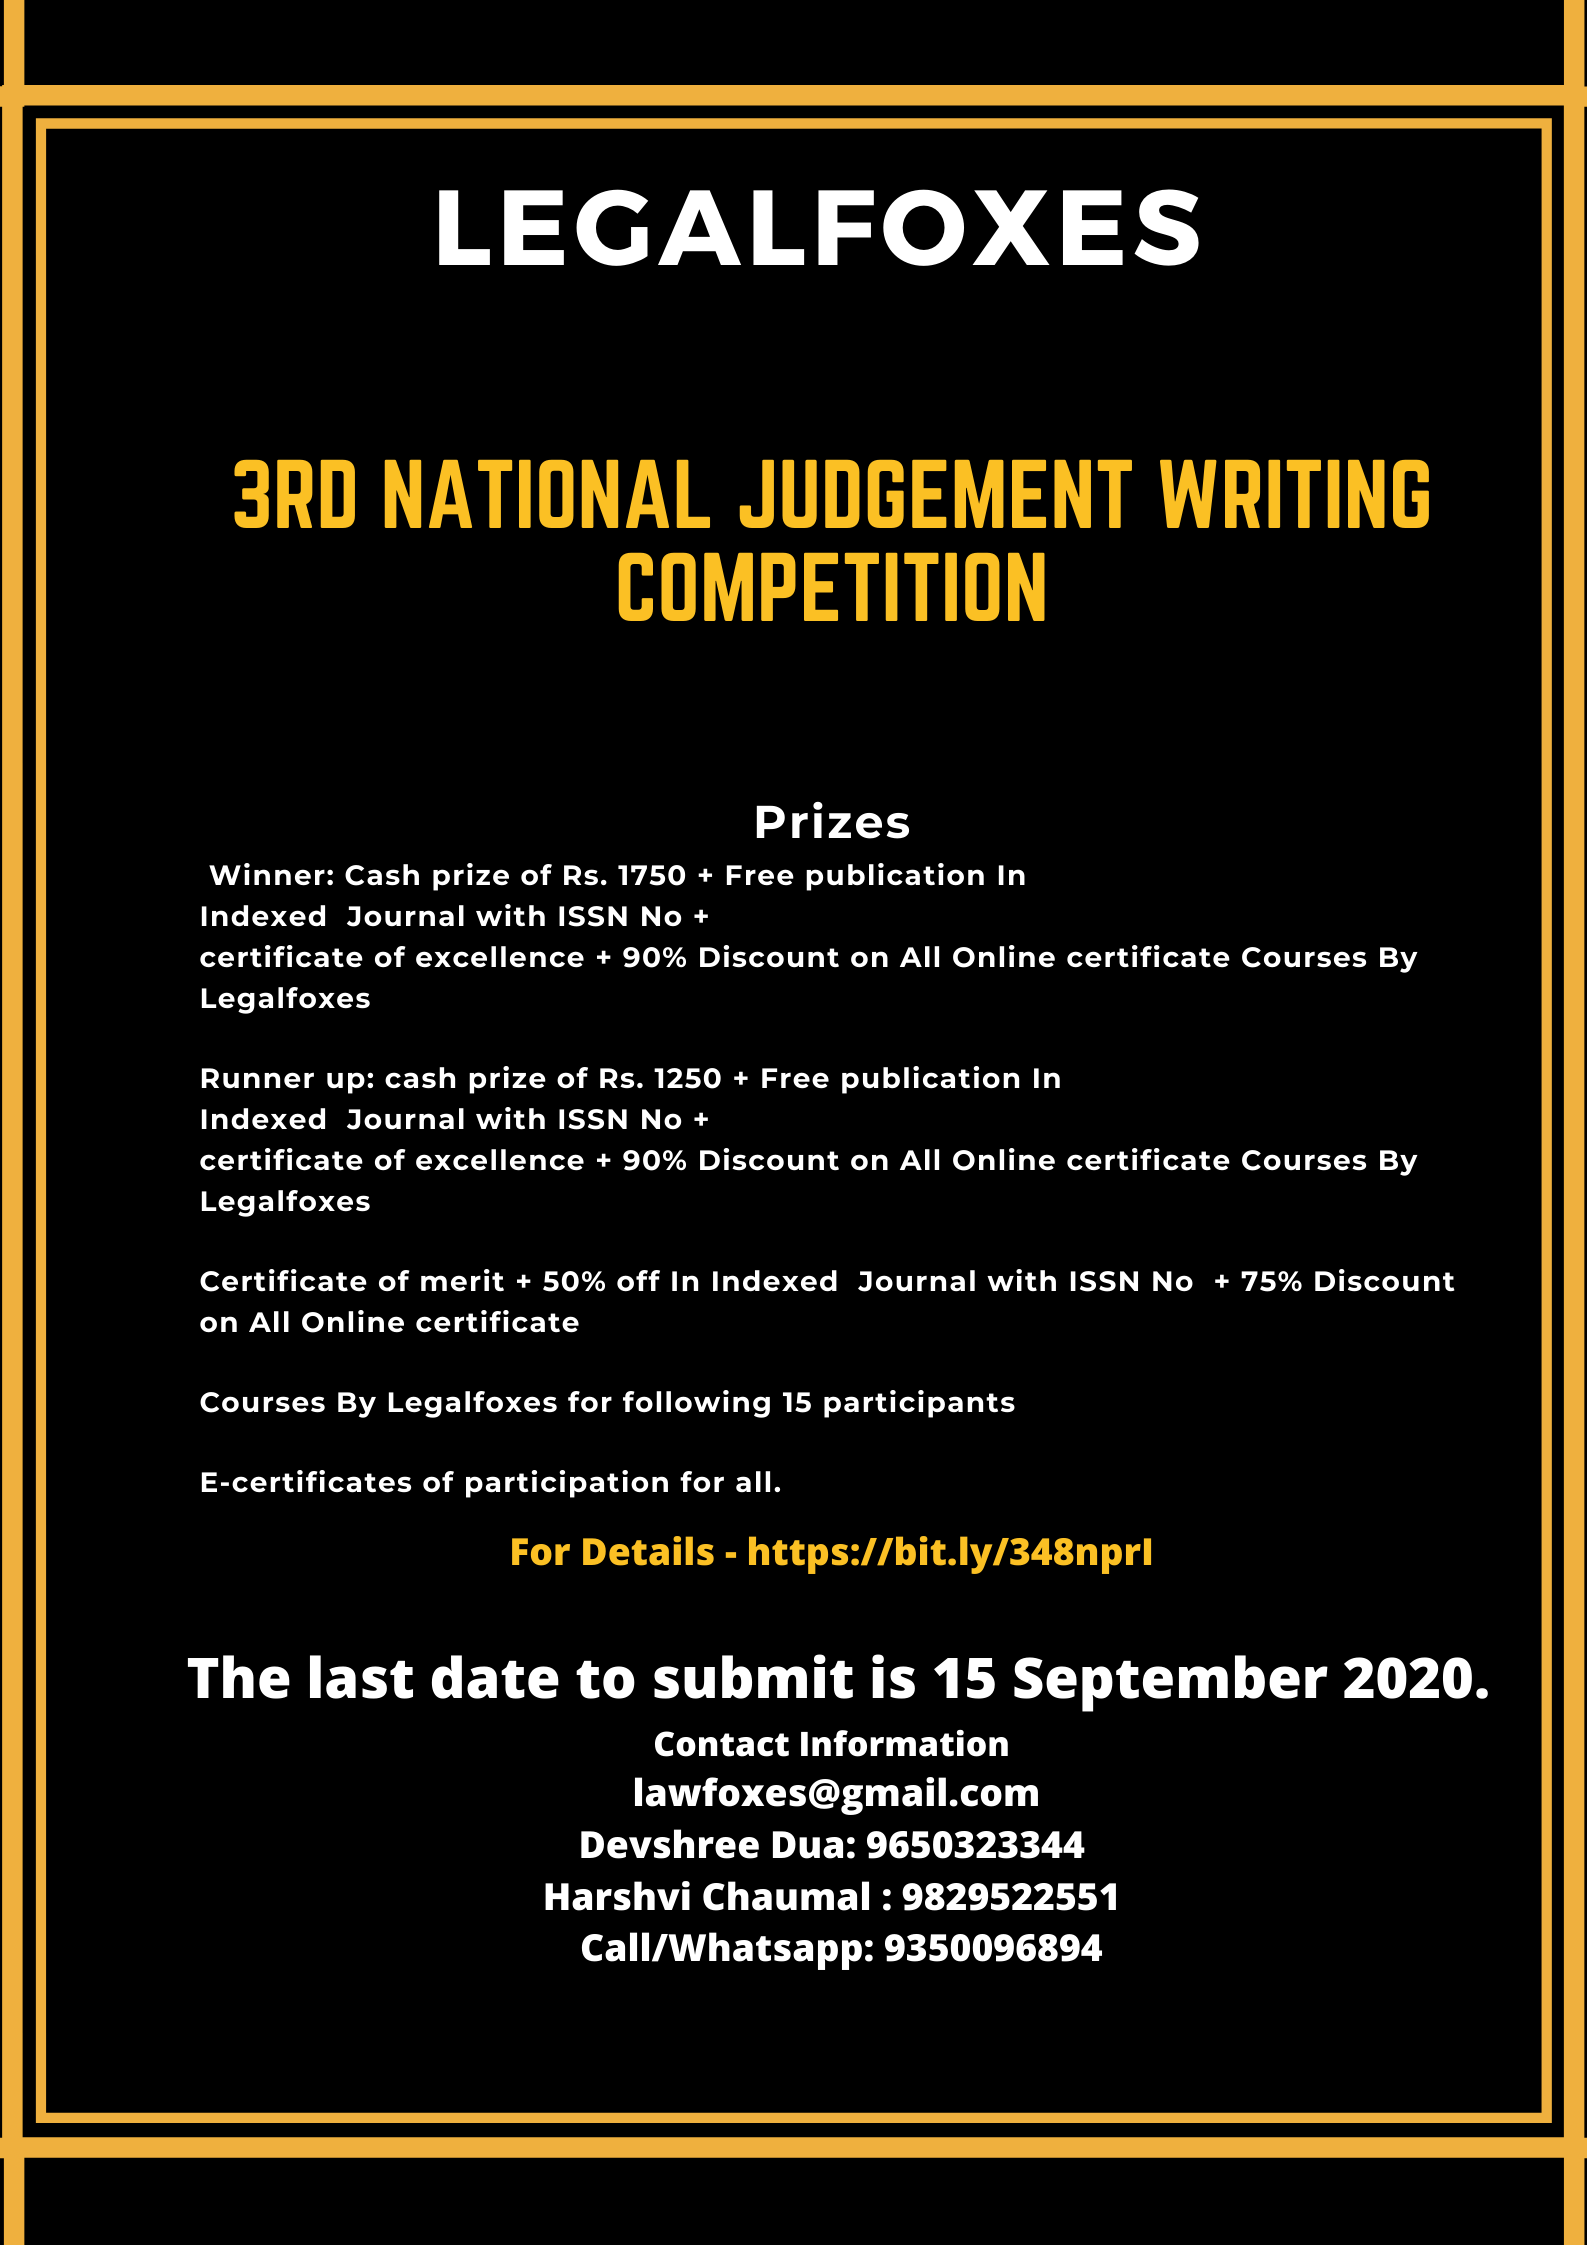 Legal Foxes' 3rd National Online Judgement Writing Competition